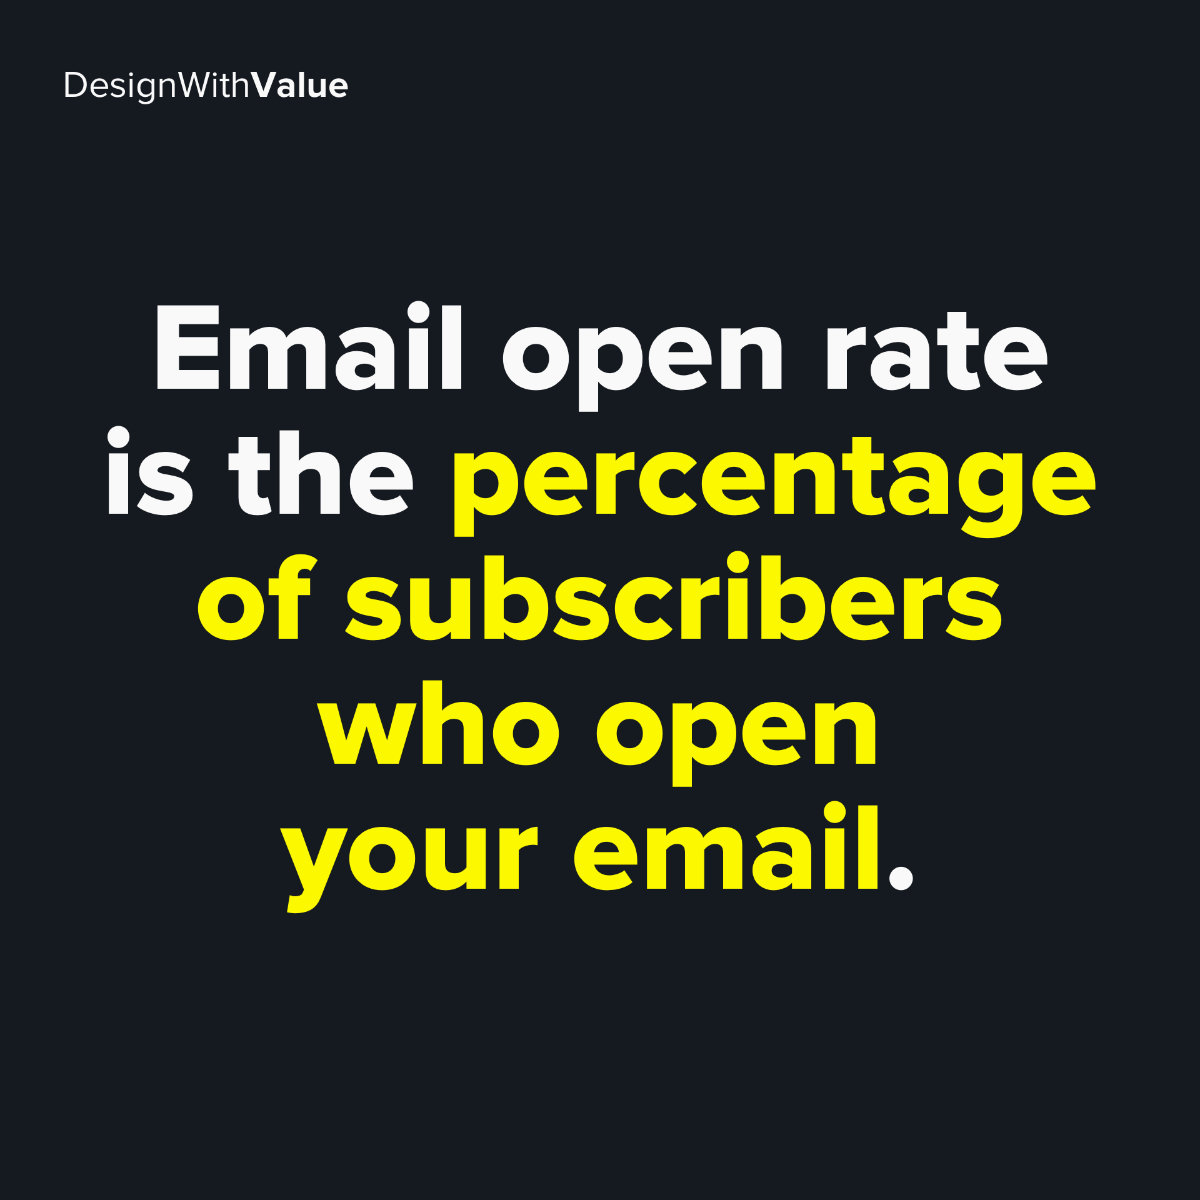 Email open rate is the percentage of subscribers who open your email